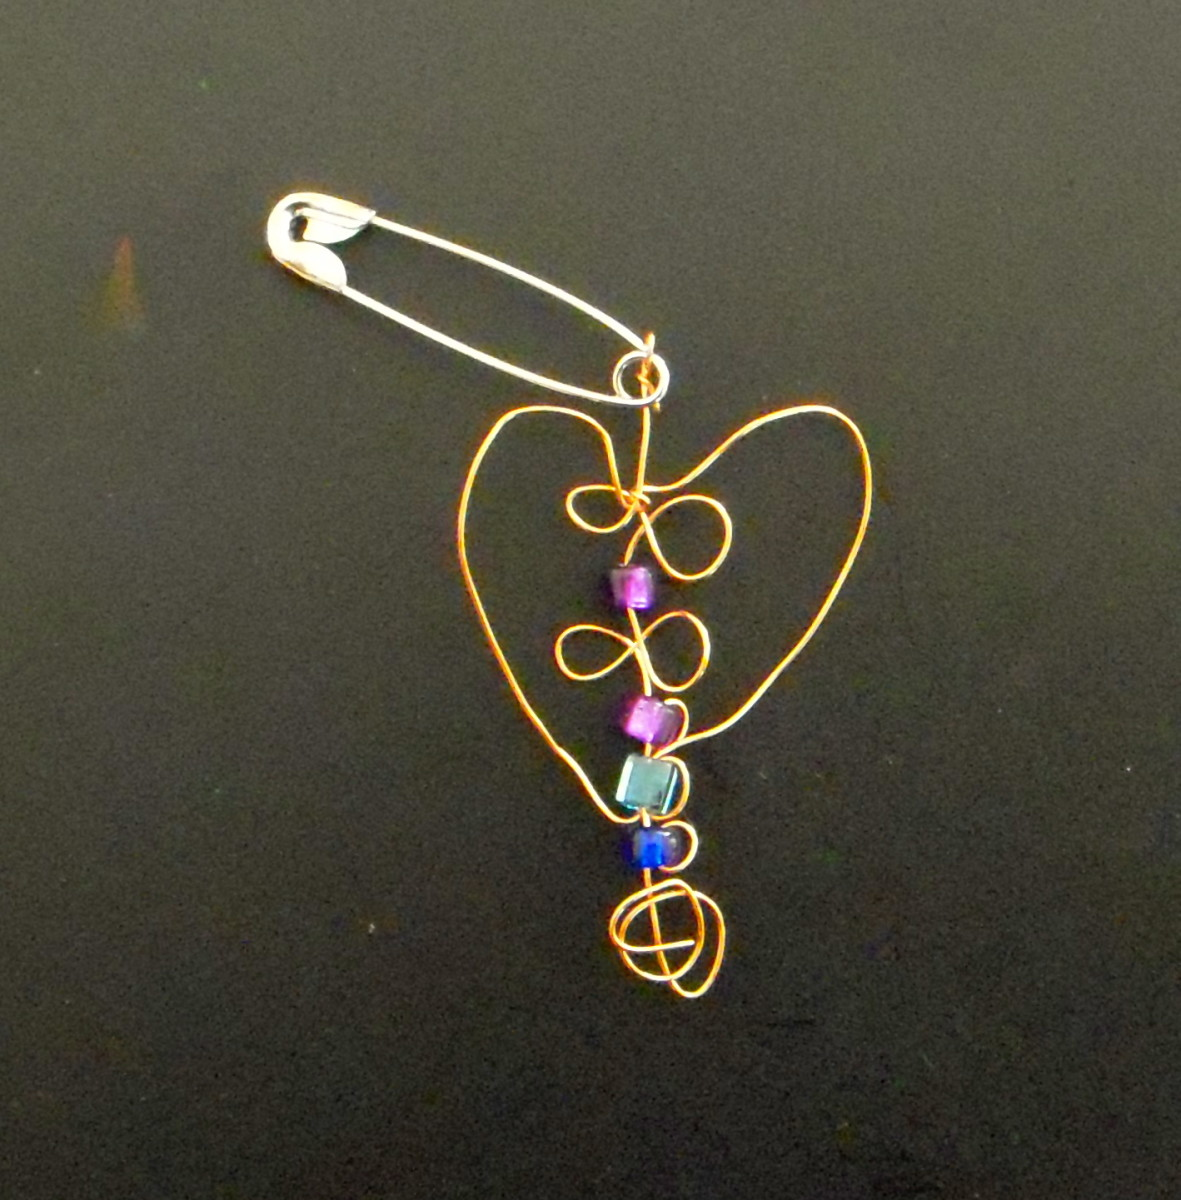 SWAP made from thin copper craft wire, a few beads and a safety pin.